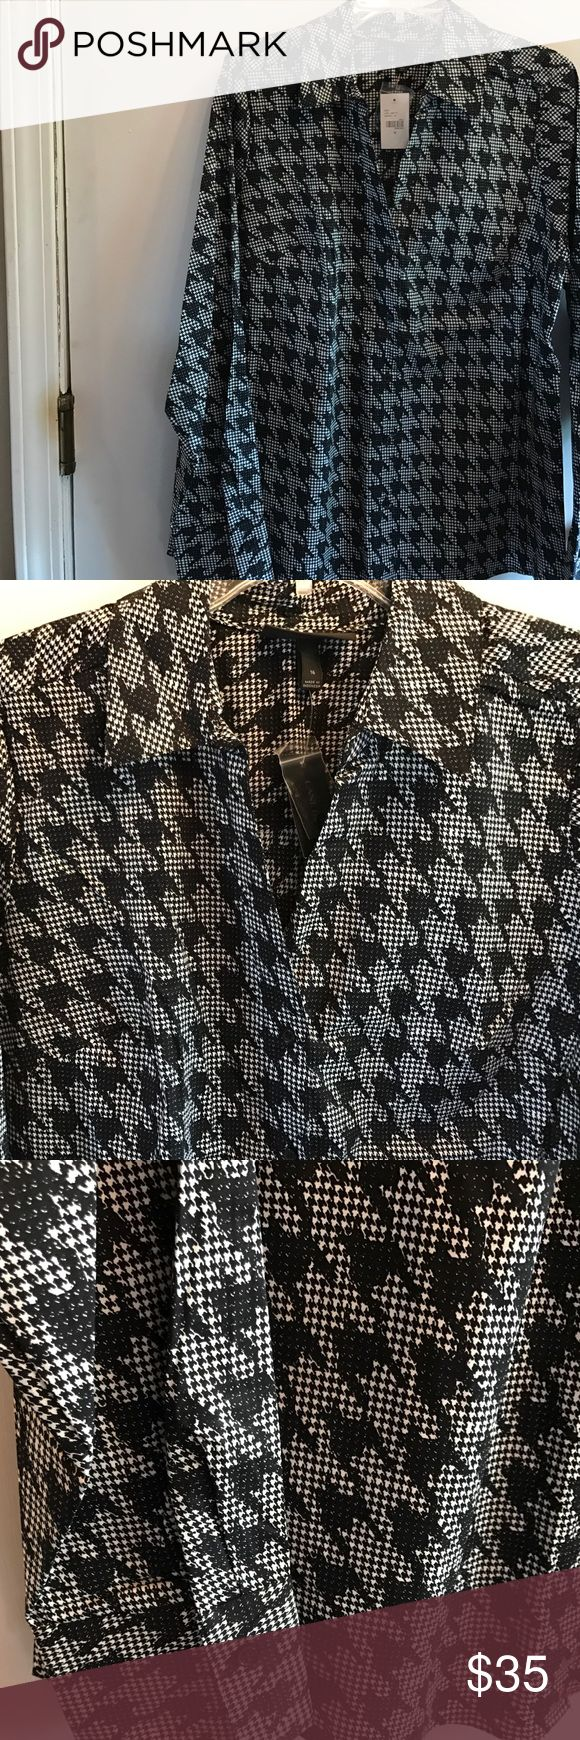 """Lane Bryant NWT black/white herringbone shirt Lane Bryant NWT black/white herringbone print button down v-neck shirt. Sz16 44"""" bust. Long sleeves & Shirt tail hem. Cotton, spandex blend fabric. Wear anytime anywhere with practically anything! The button down shirt is a classic & wardrobe staple! Be sure to check my closet for other similar items. No trades. Lane Bryant Tops Button Down Shirts"""